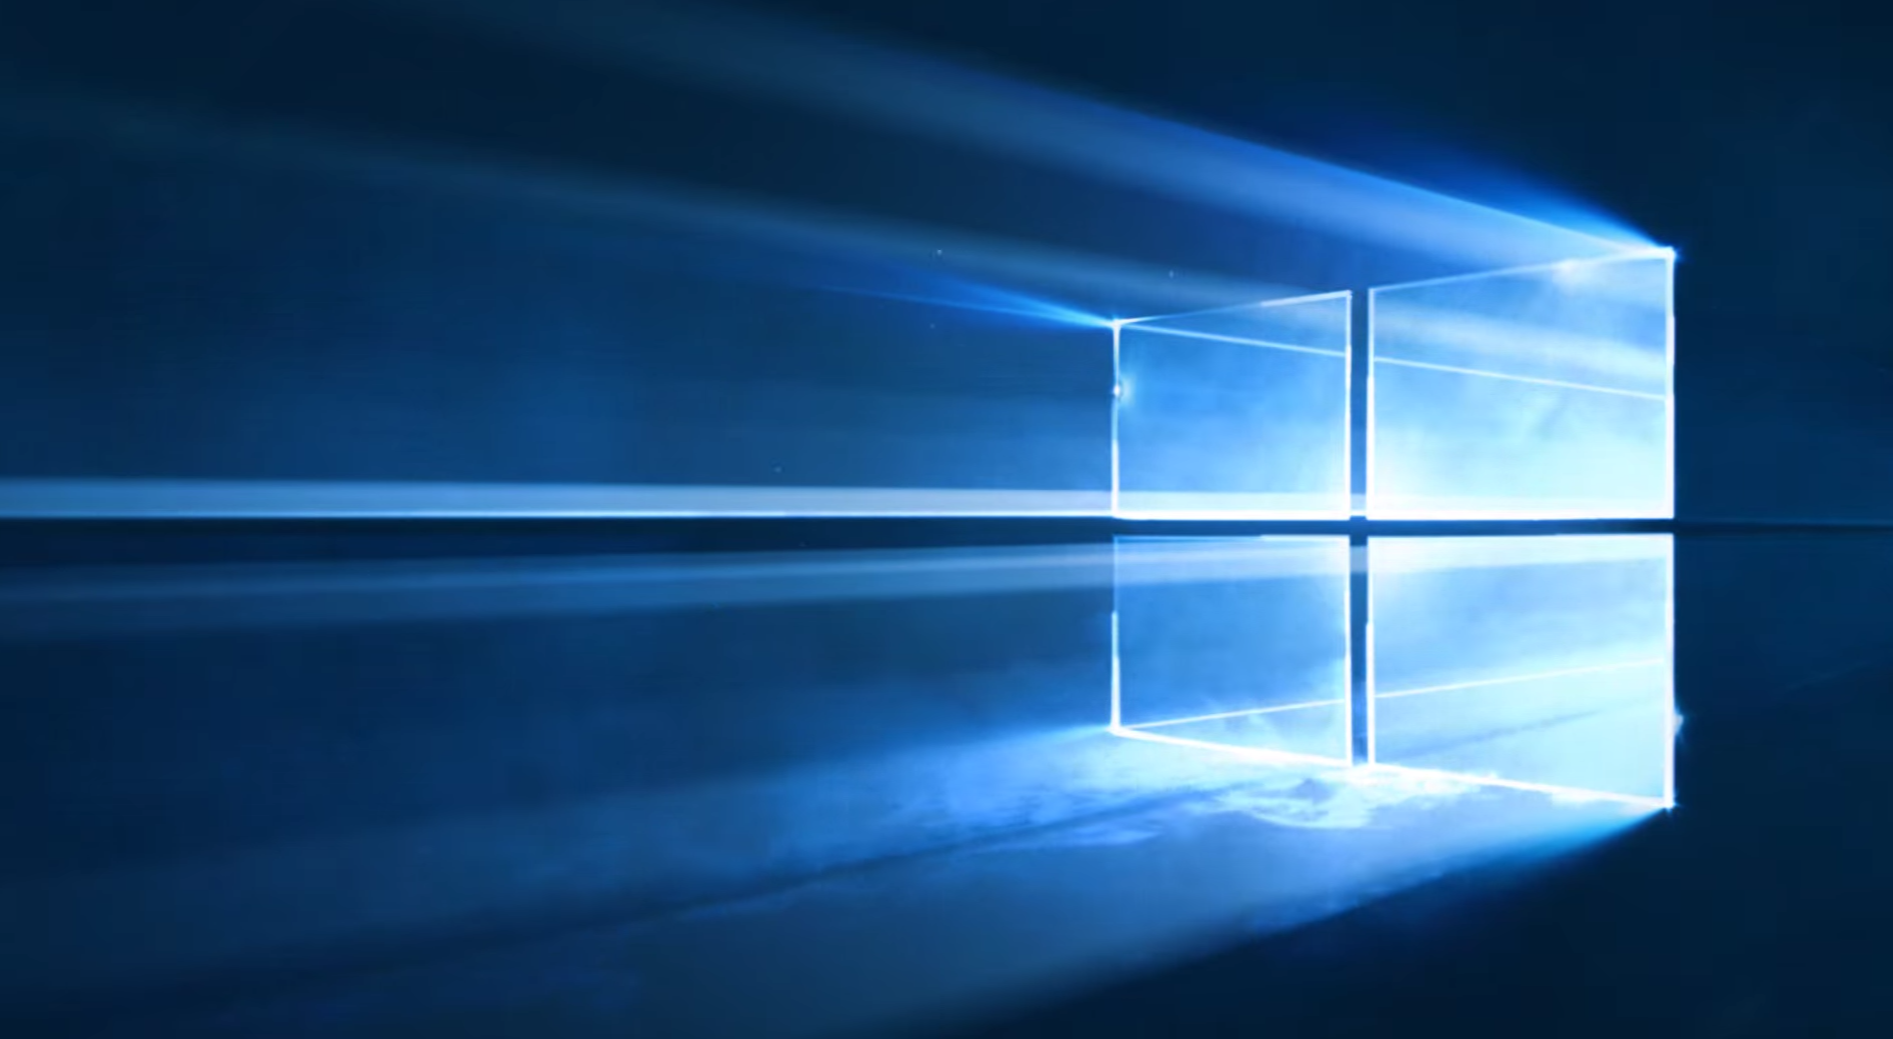 The free Windows 10 upgrade: Who should do it, who could wait